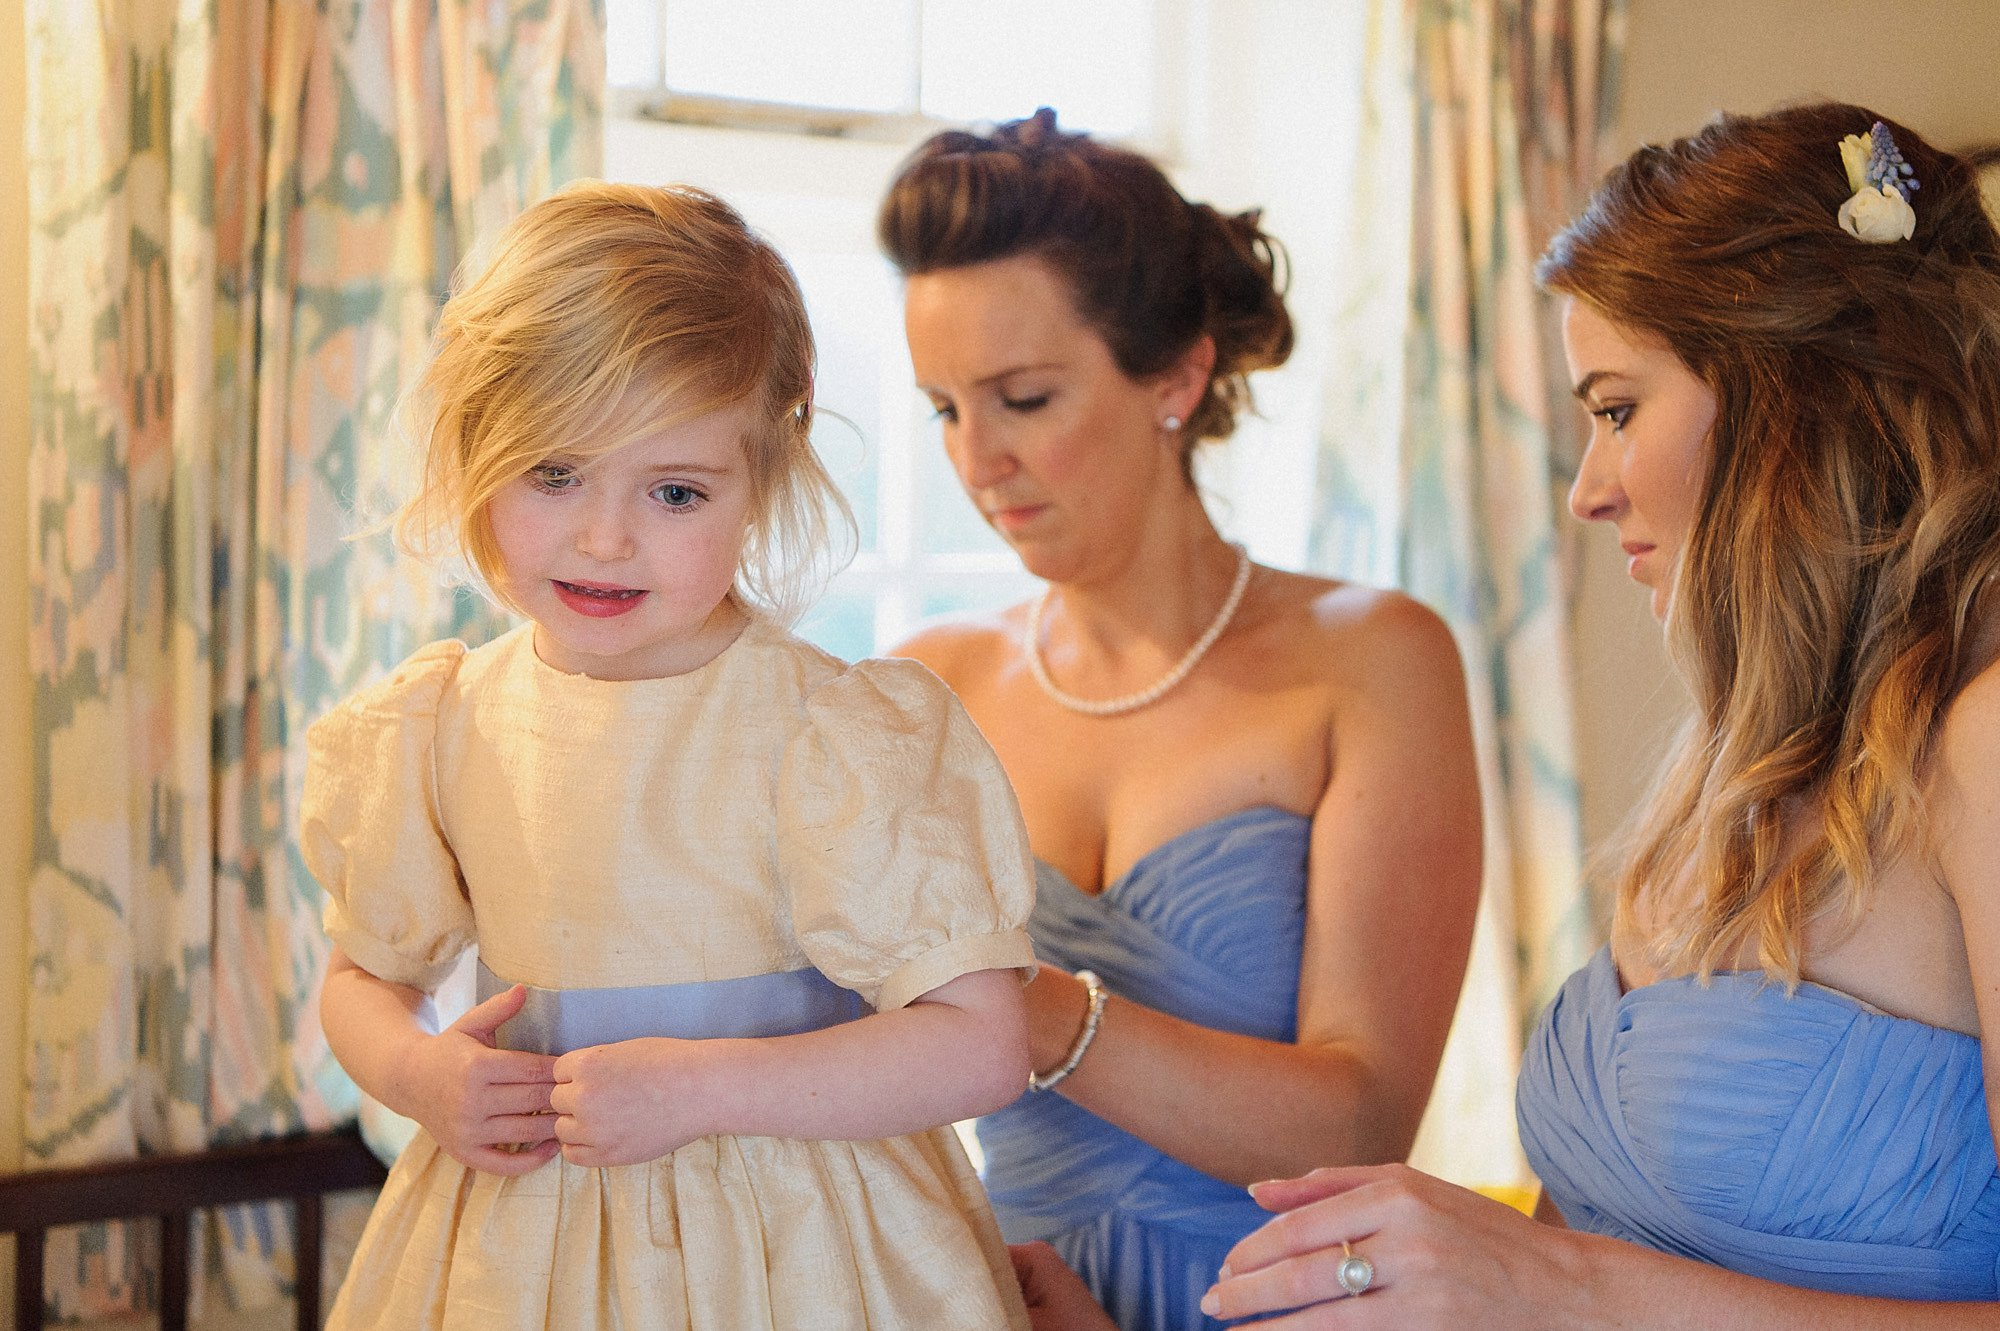 brides maids help the flower girl into her dress